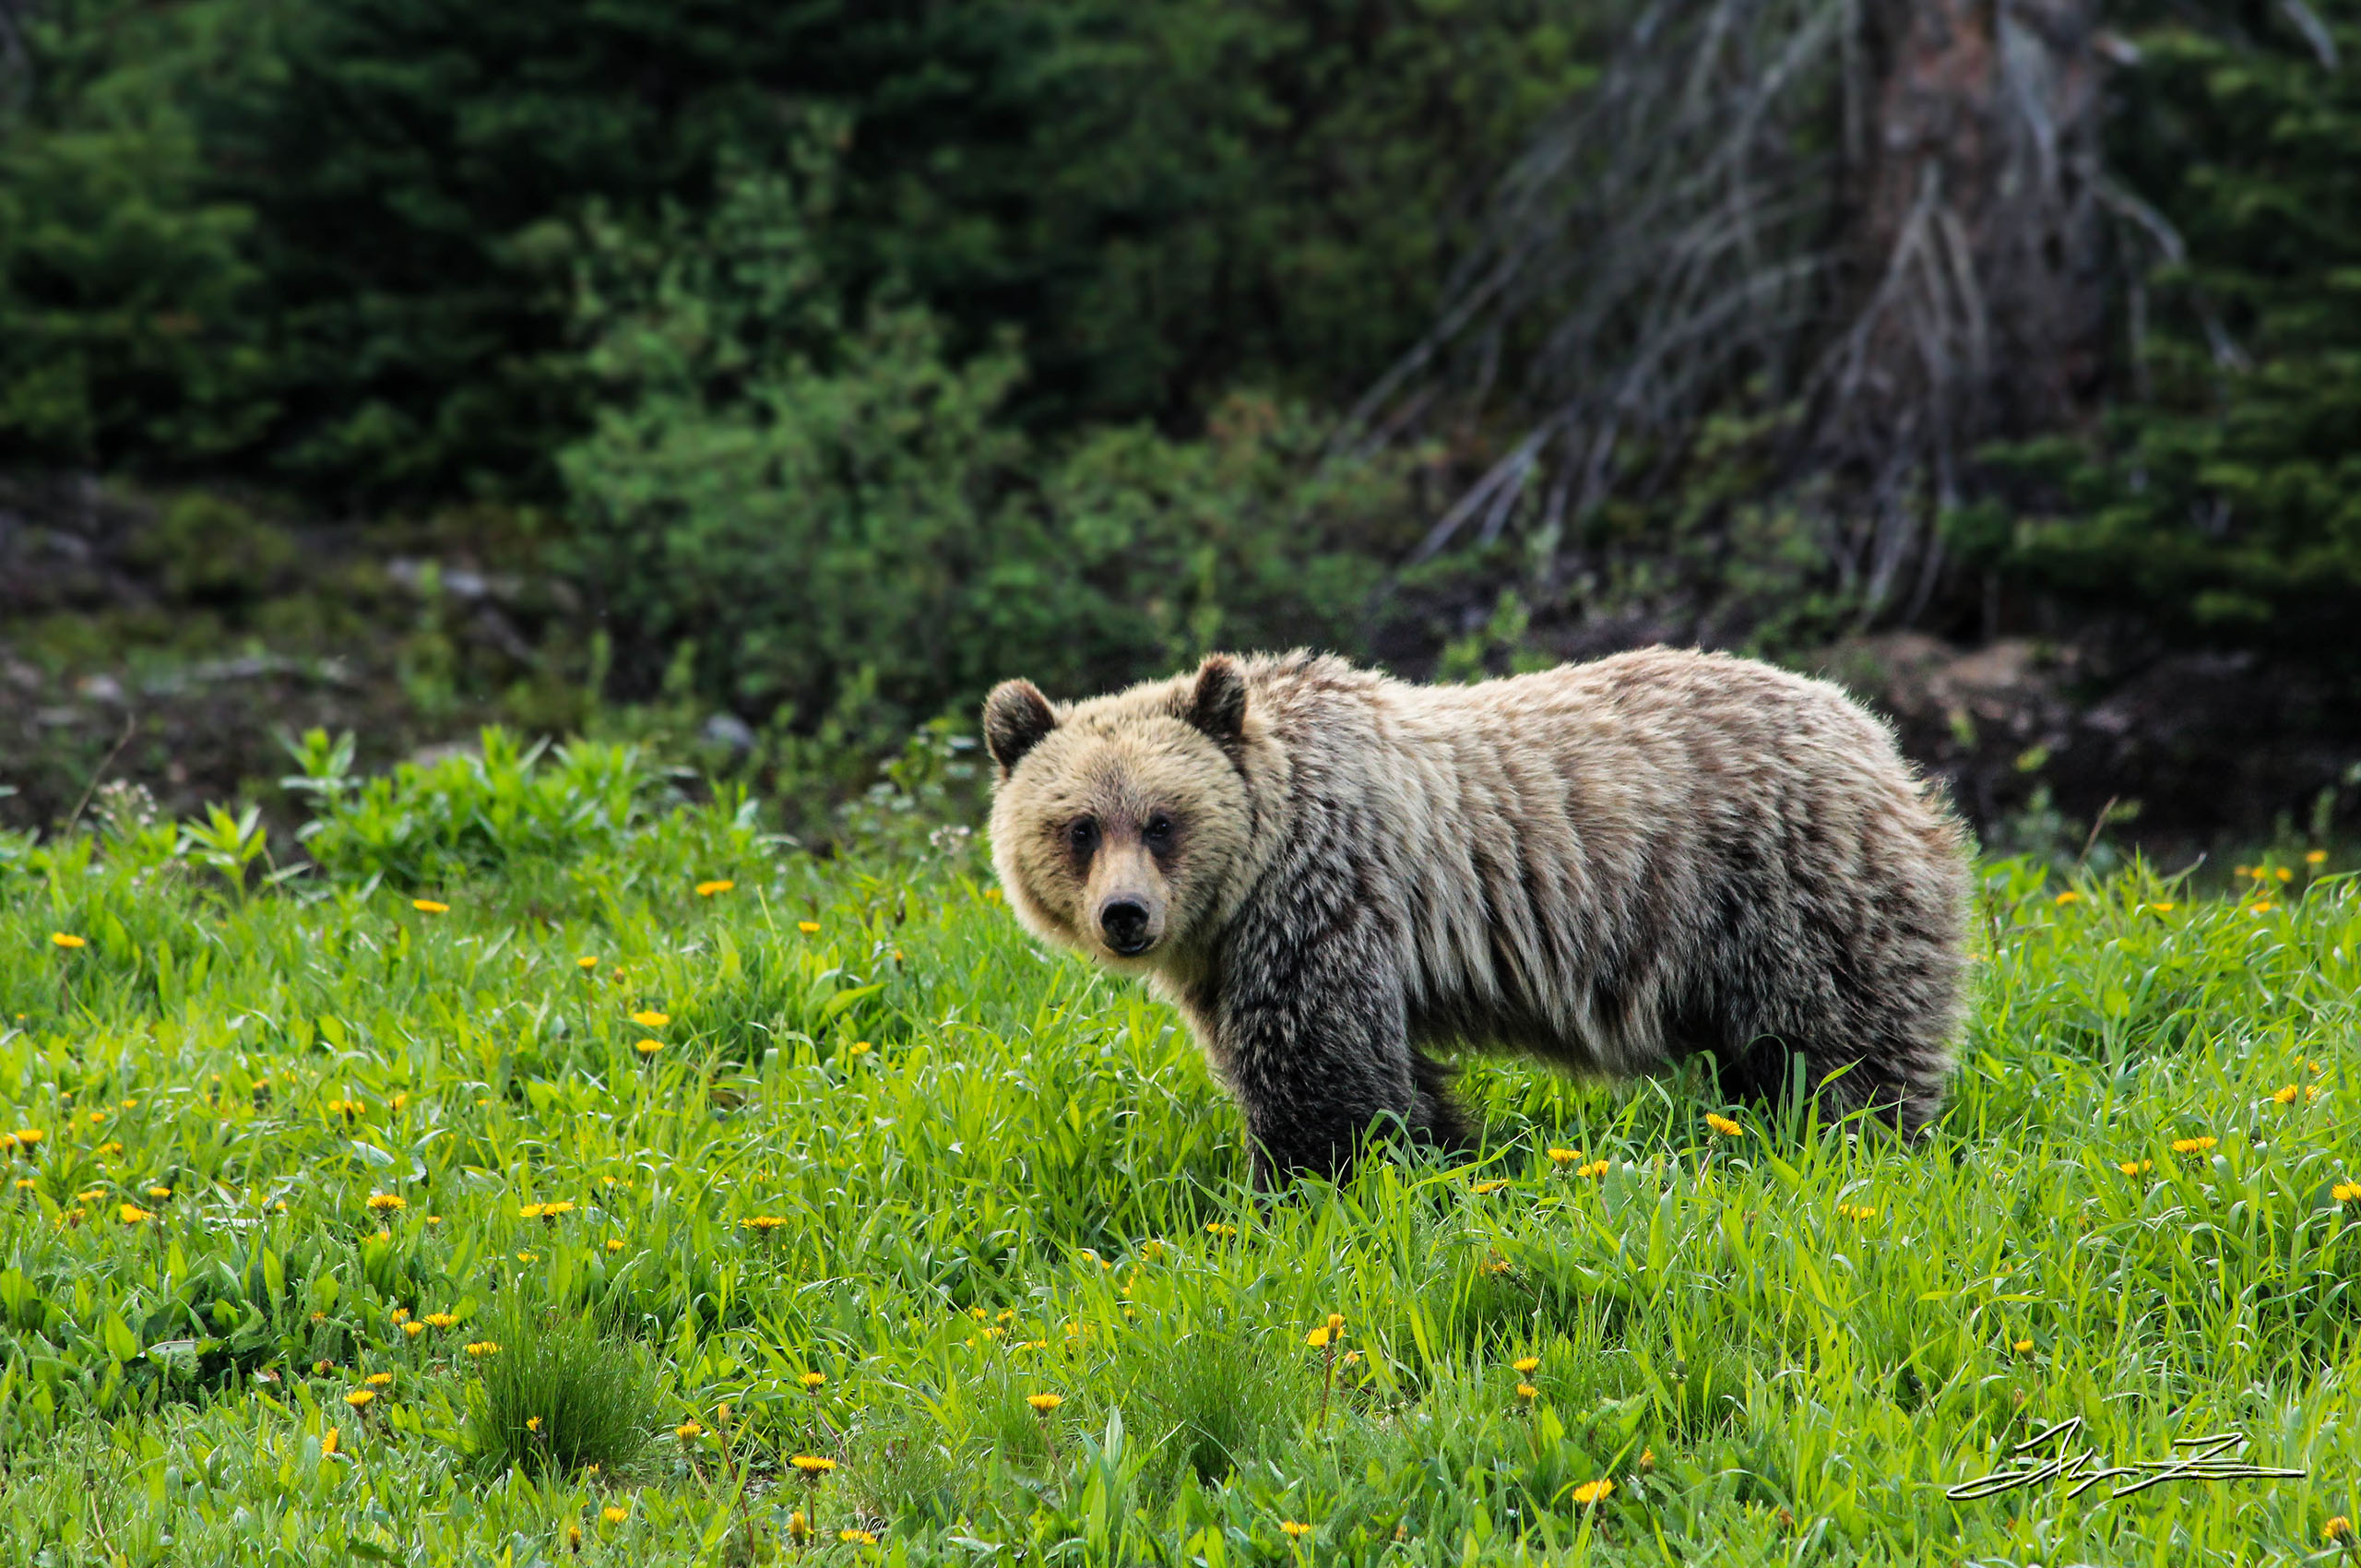 A grizzly bear, captured by photographer and DPUB student Alayna Fairman